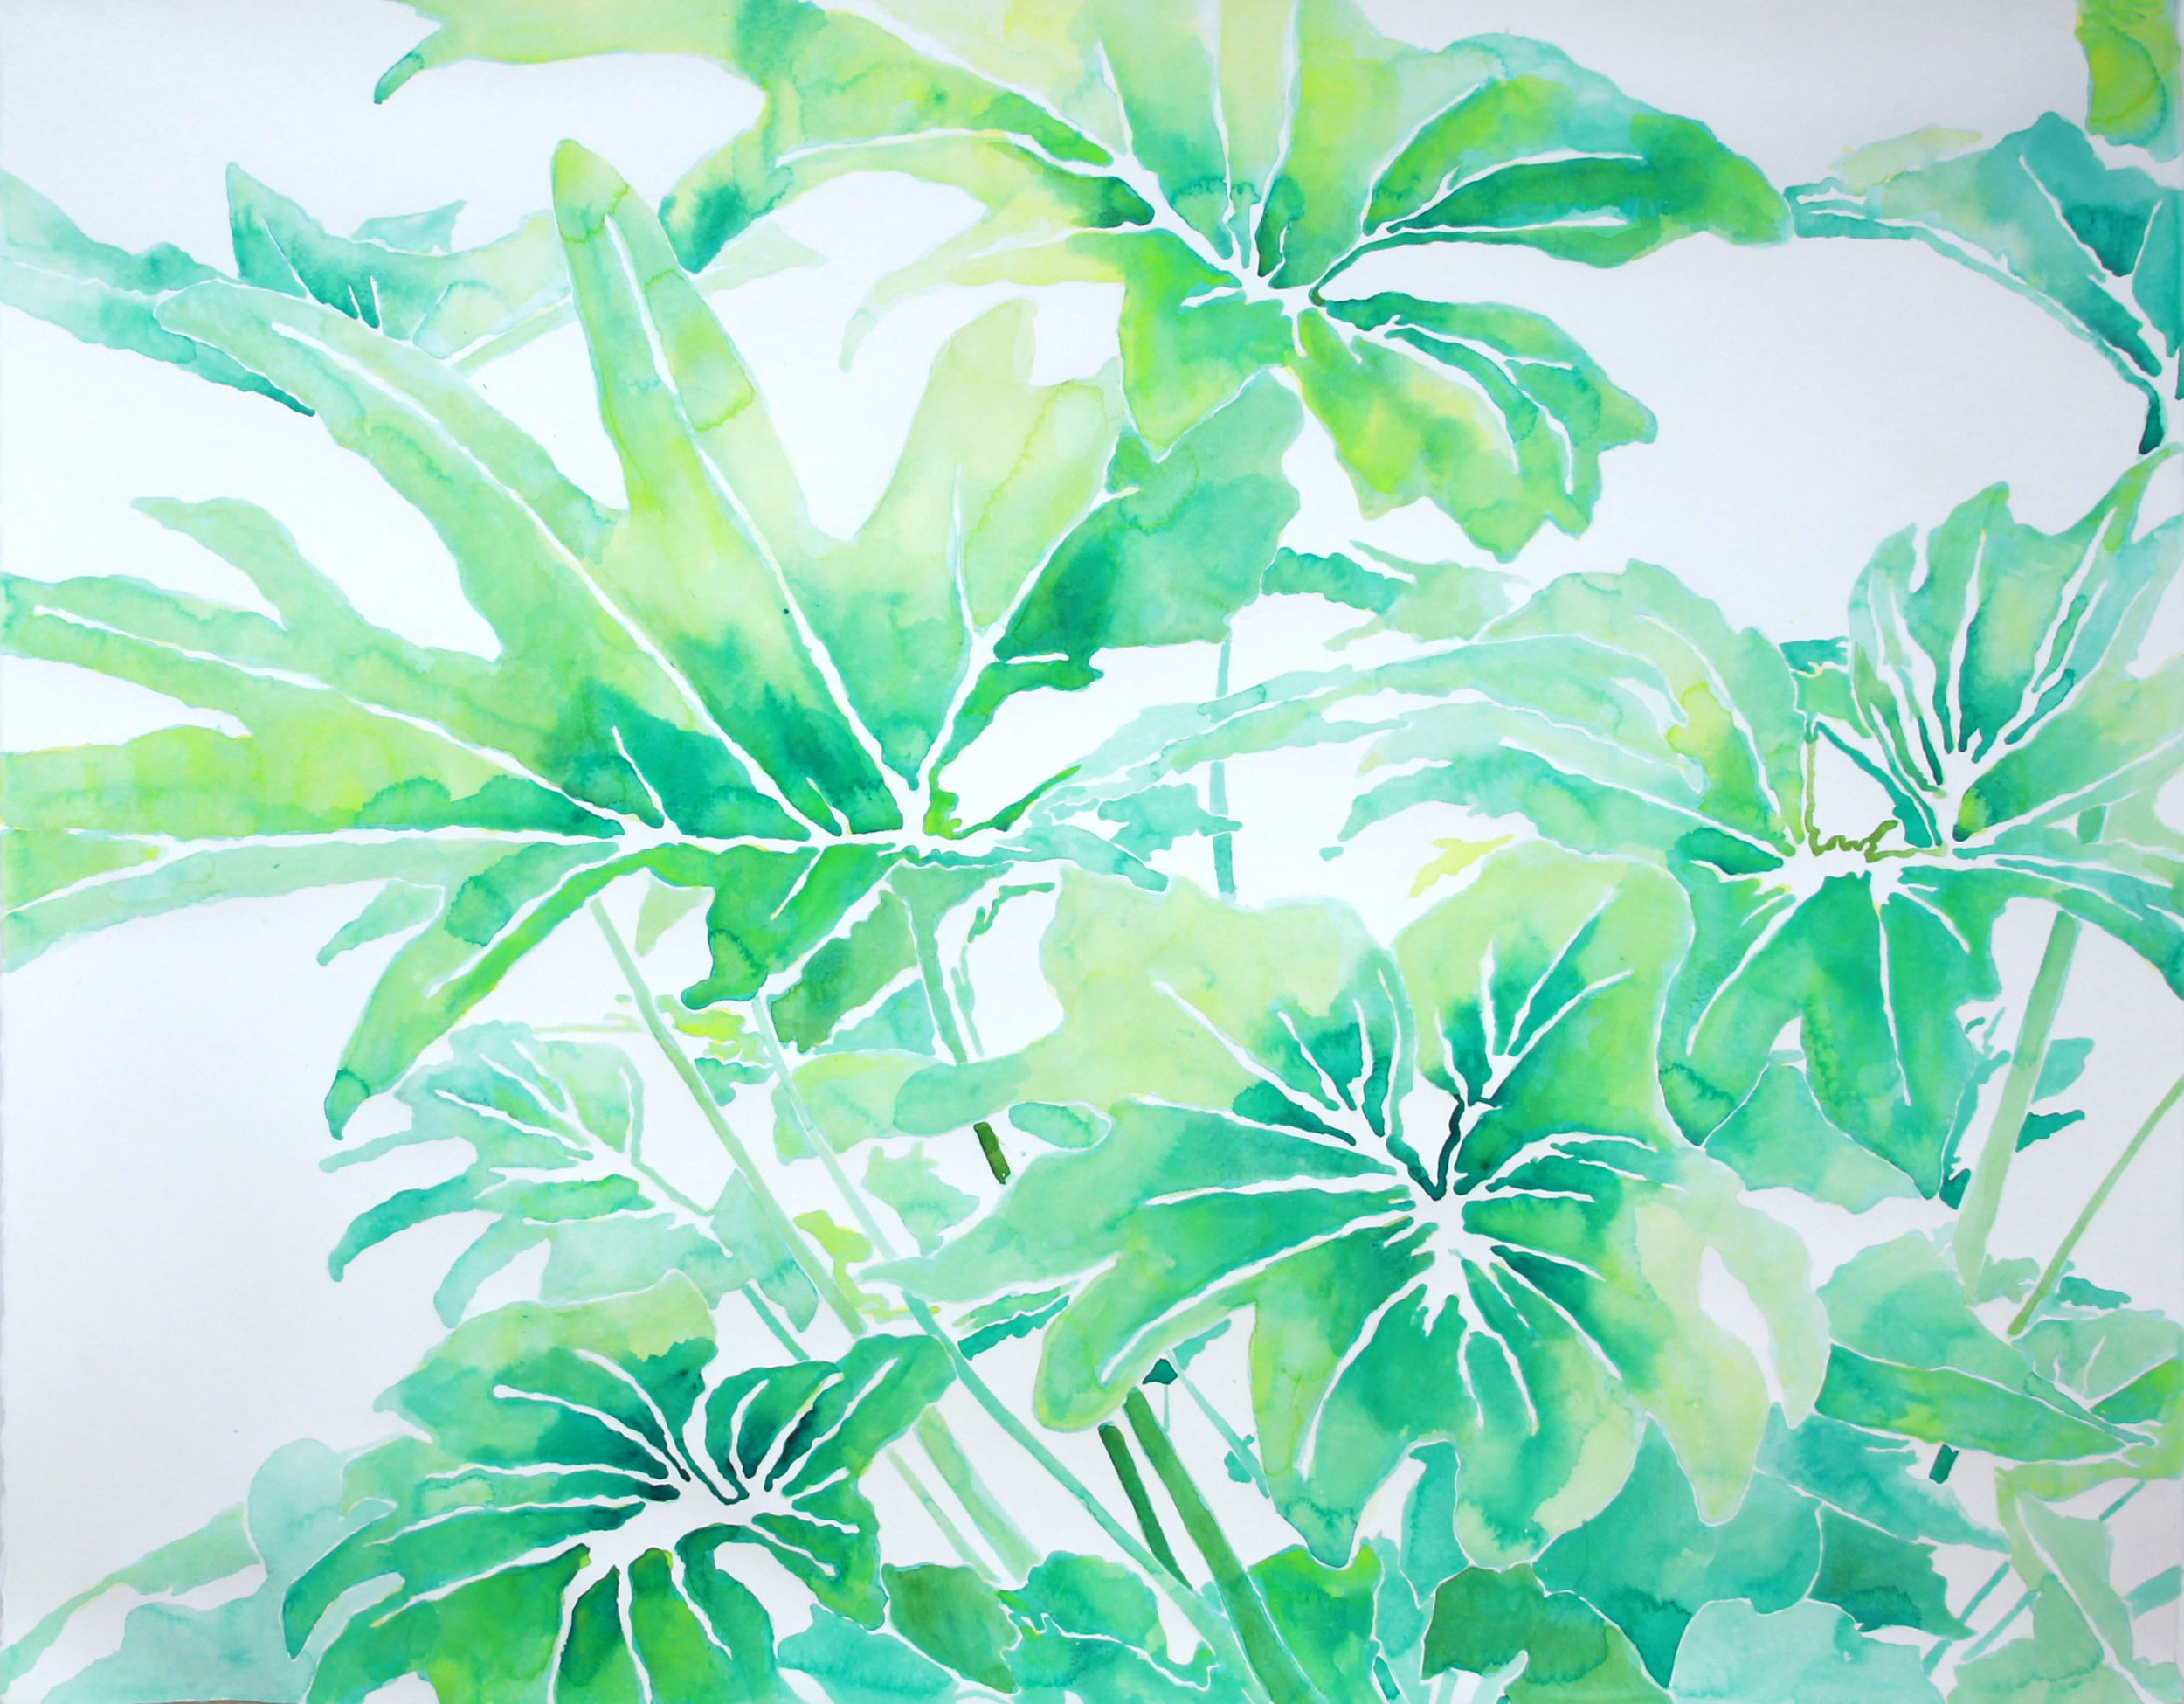 untitled (philodendron in greens)